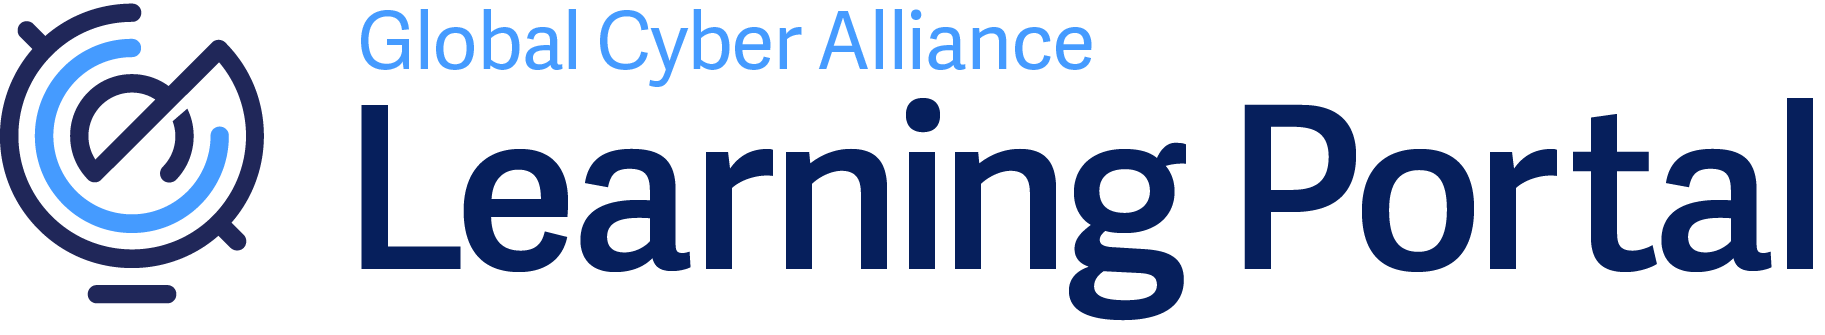 Global Cyber Alliance Learning Portal